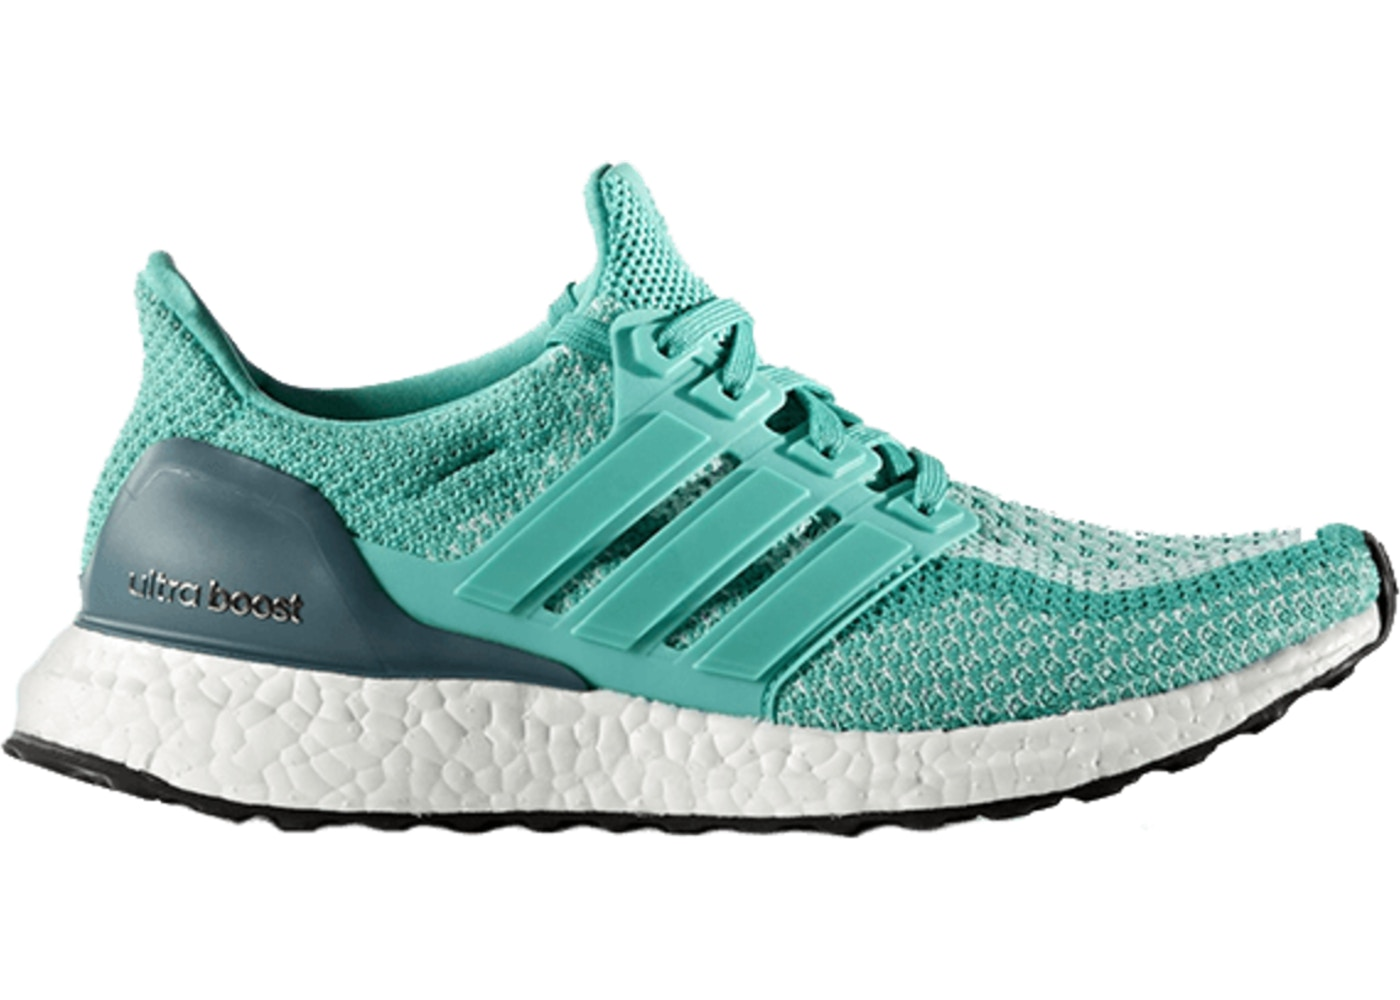 timeless design 58413 4546c adidas Ultra Boost 2.0 Mint (W) - AQ5937